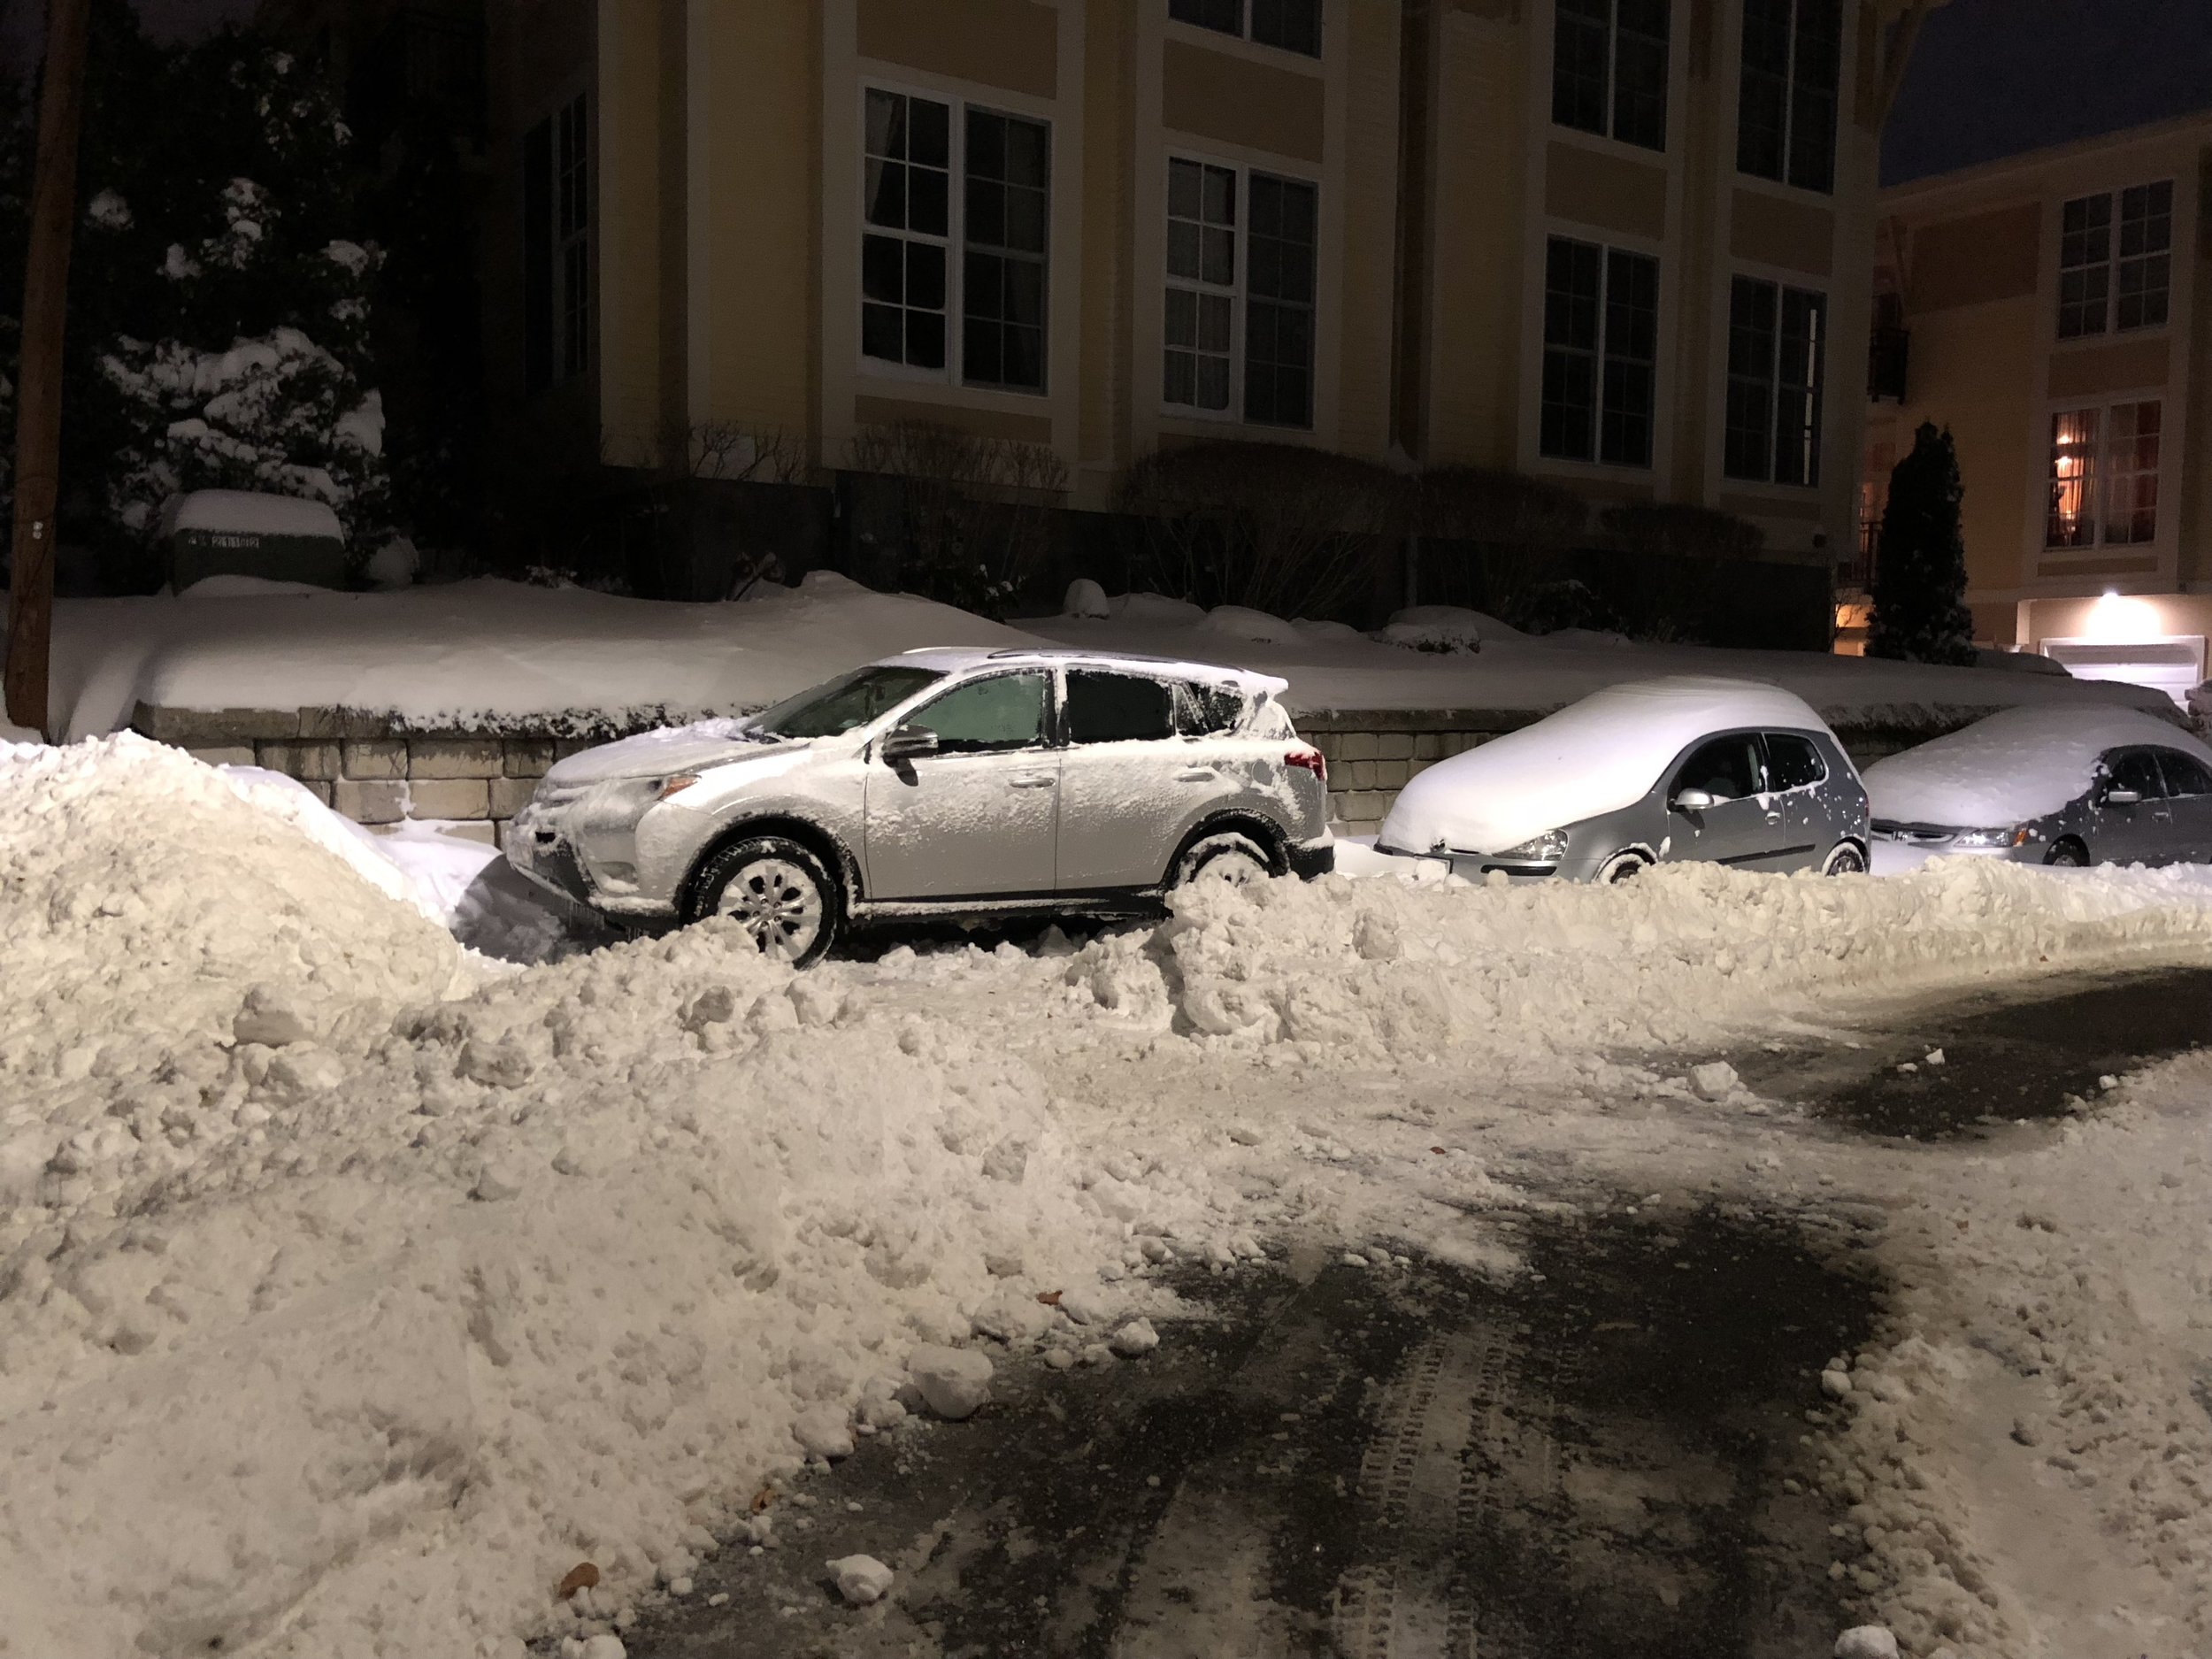 Definitely need brakes for the snow….